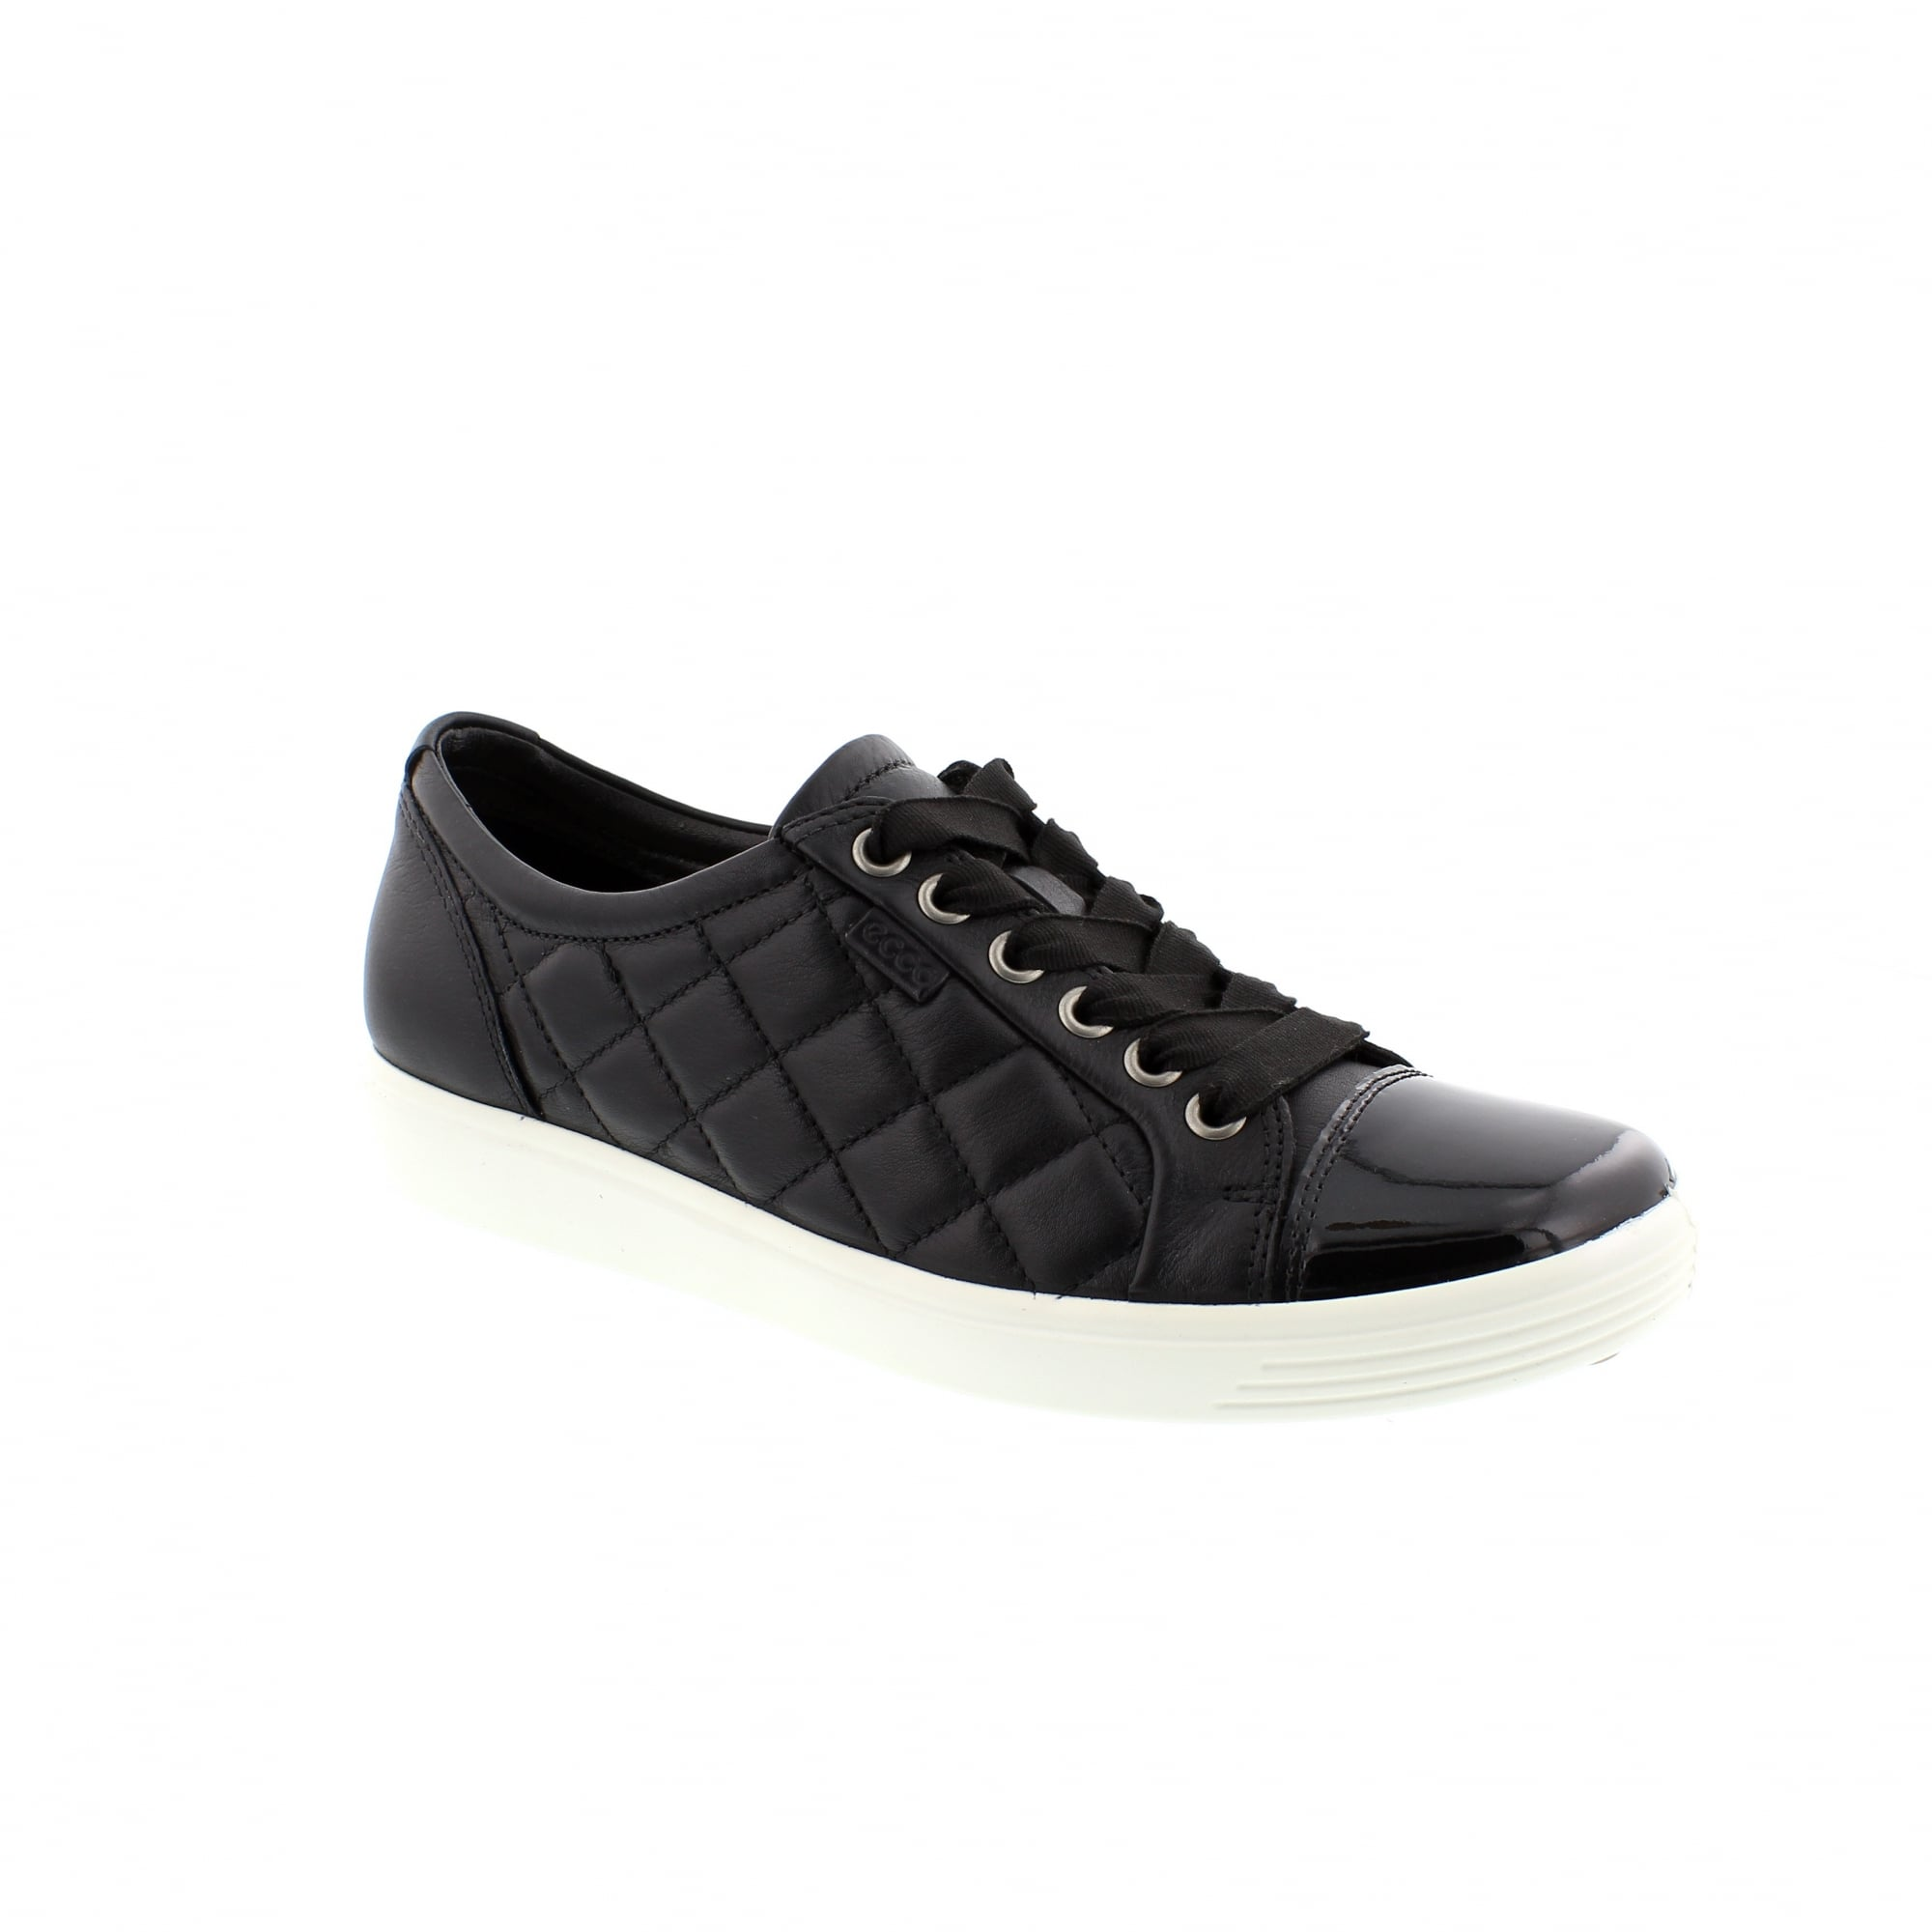 50659 7430083 Ecco Womens Uk Soft Shoes From Rogerson kXPZTOiu